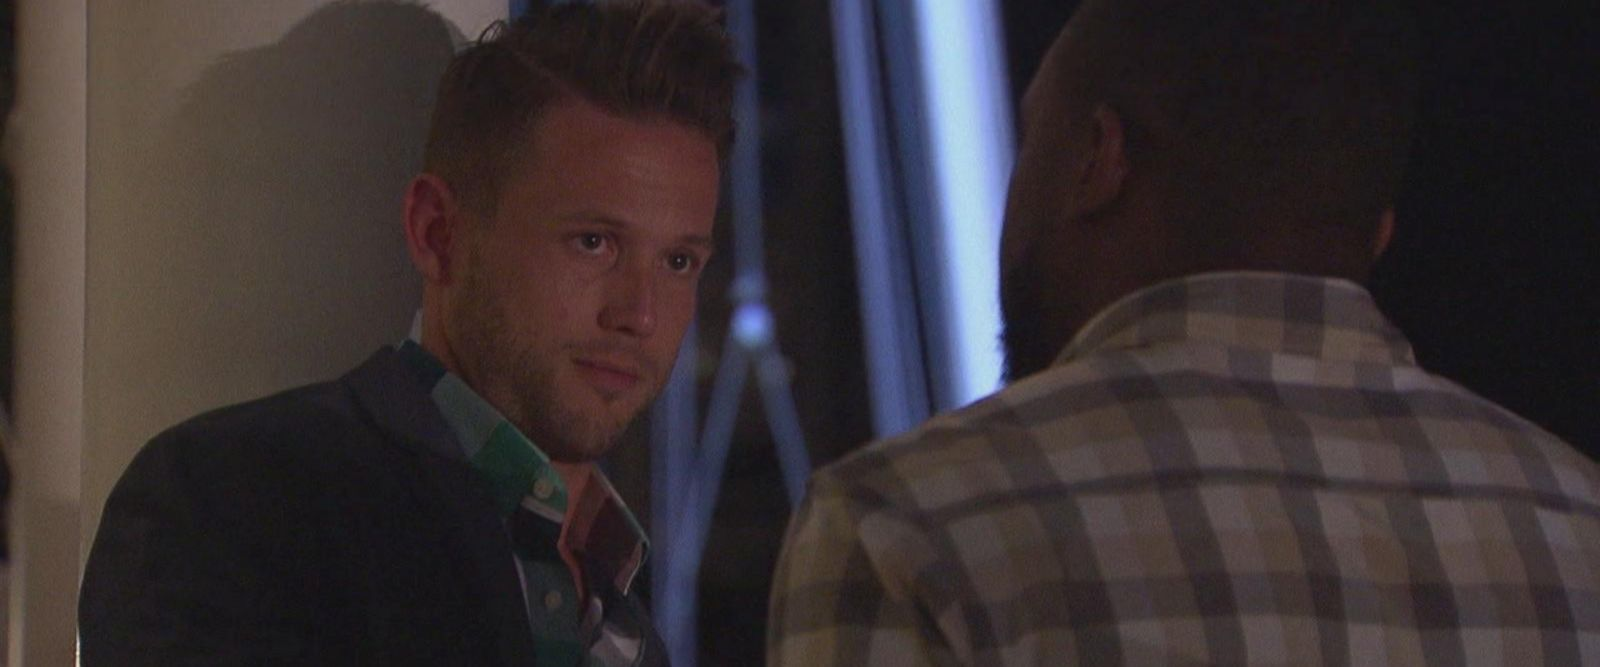 VIDEO: 'The Bachelorette' preview: Lee and Kenny face off